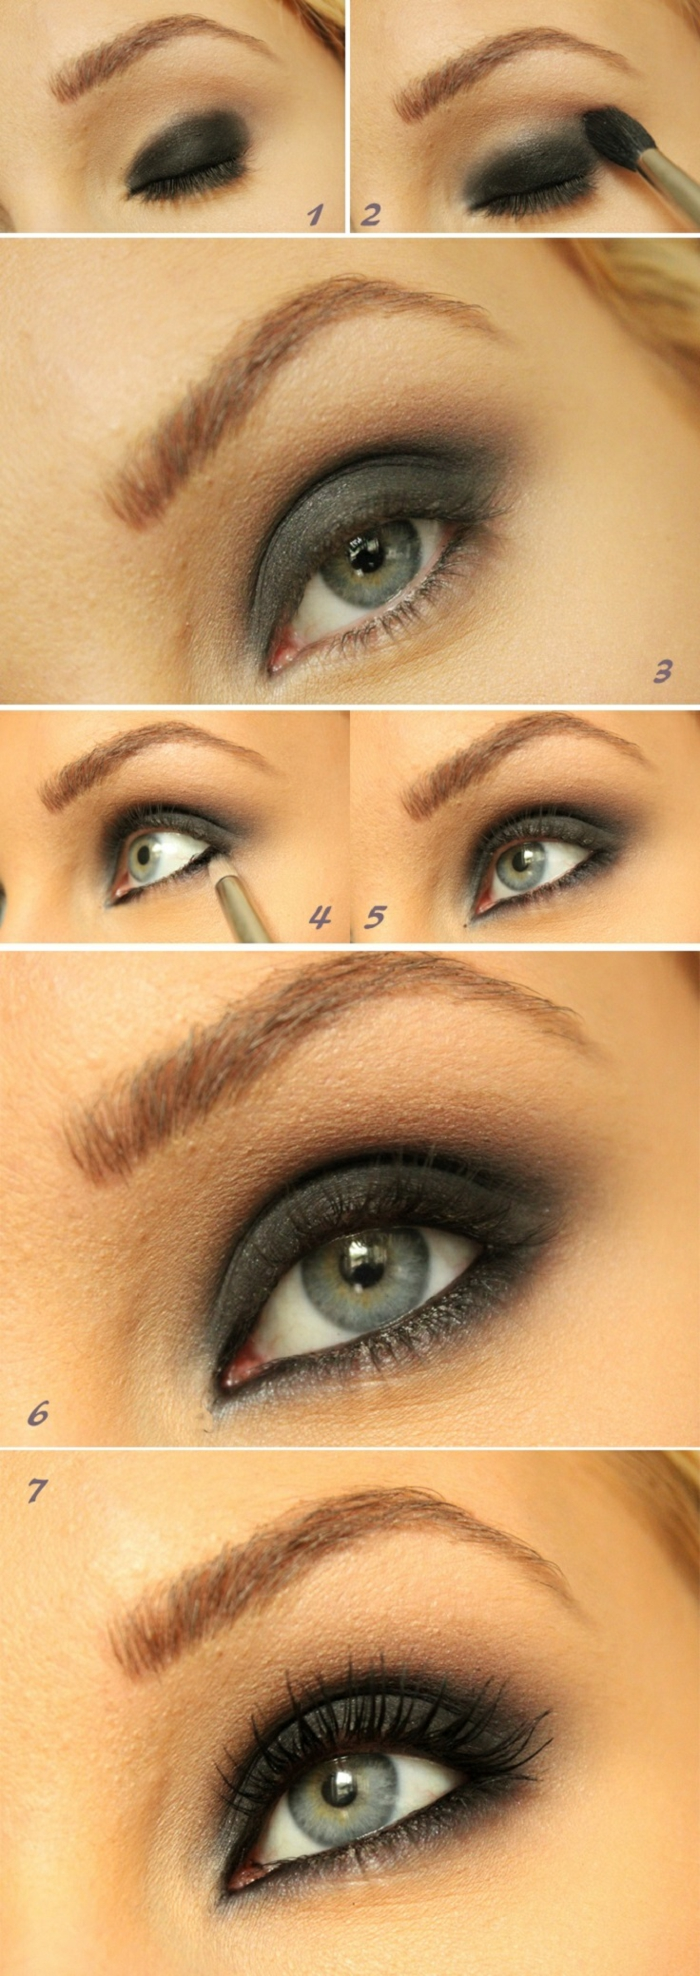 Makeup-eyes-green-brown make-night-eyes-green-steps-resized